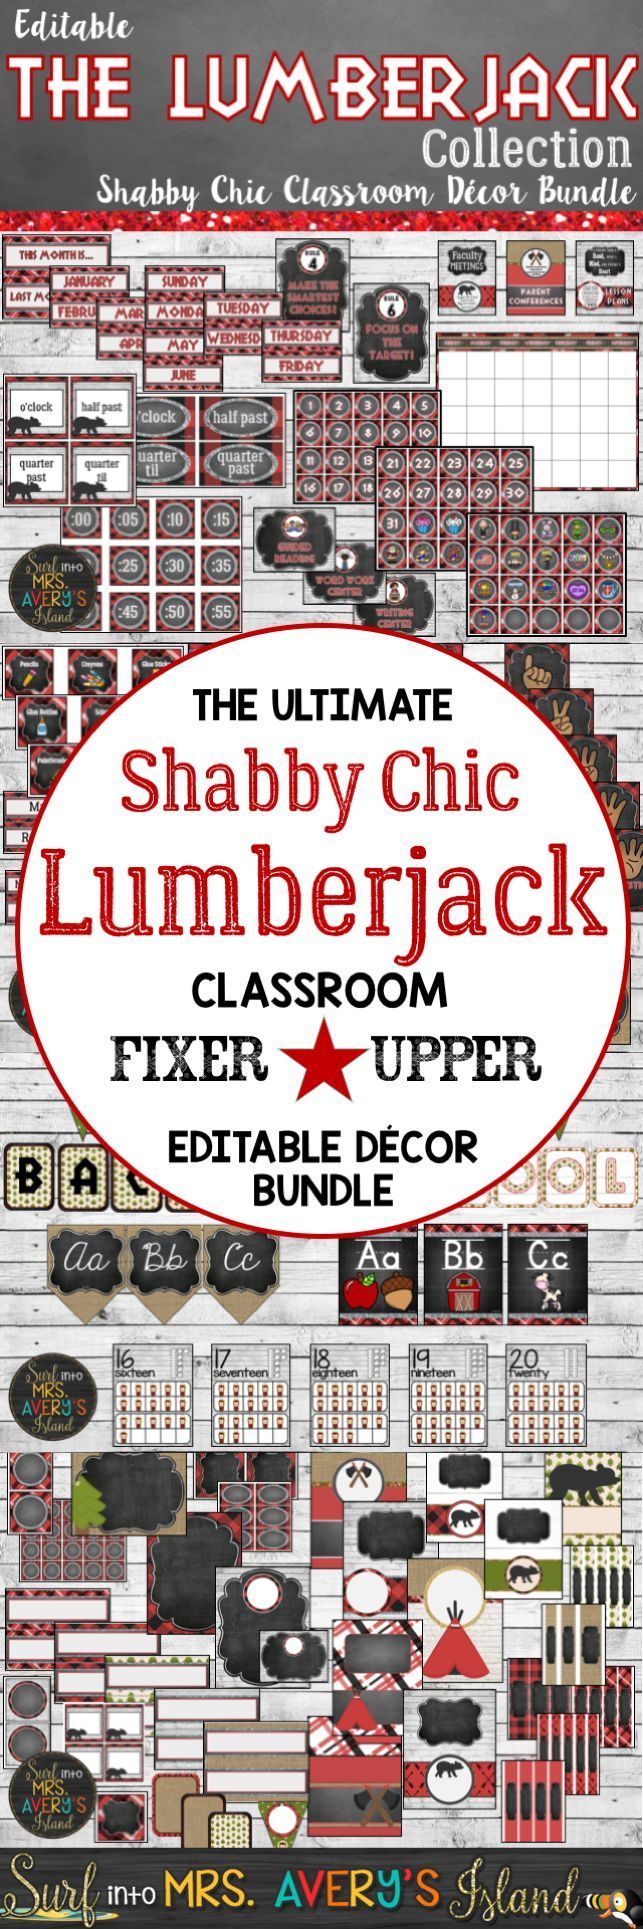 Give your classroom a shabby chic look with this editable Lumberjack Themed Classroom Decor Bundle, and welcome your students back to school in style!  Click here to discover over 600 pages of Back to School printables created with shiplap and burlap backgrounds to help elementary school teachers with all of their classroom management and organization needs.